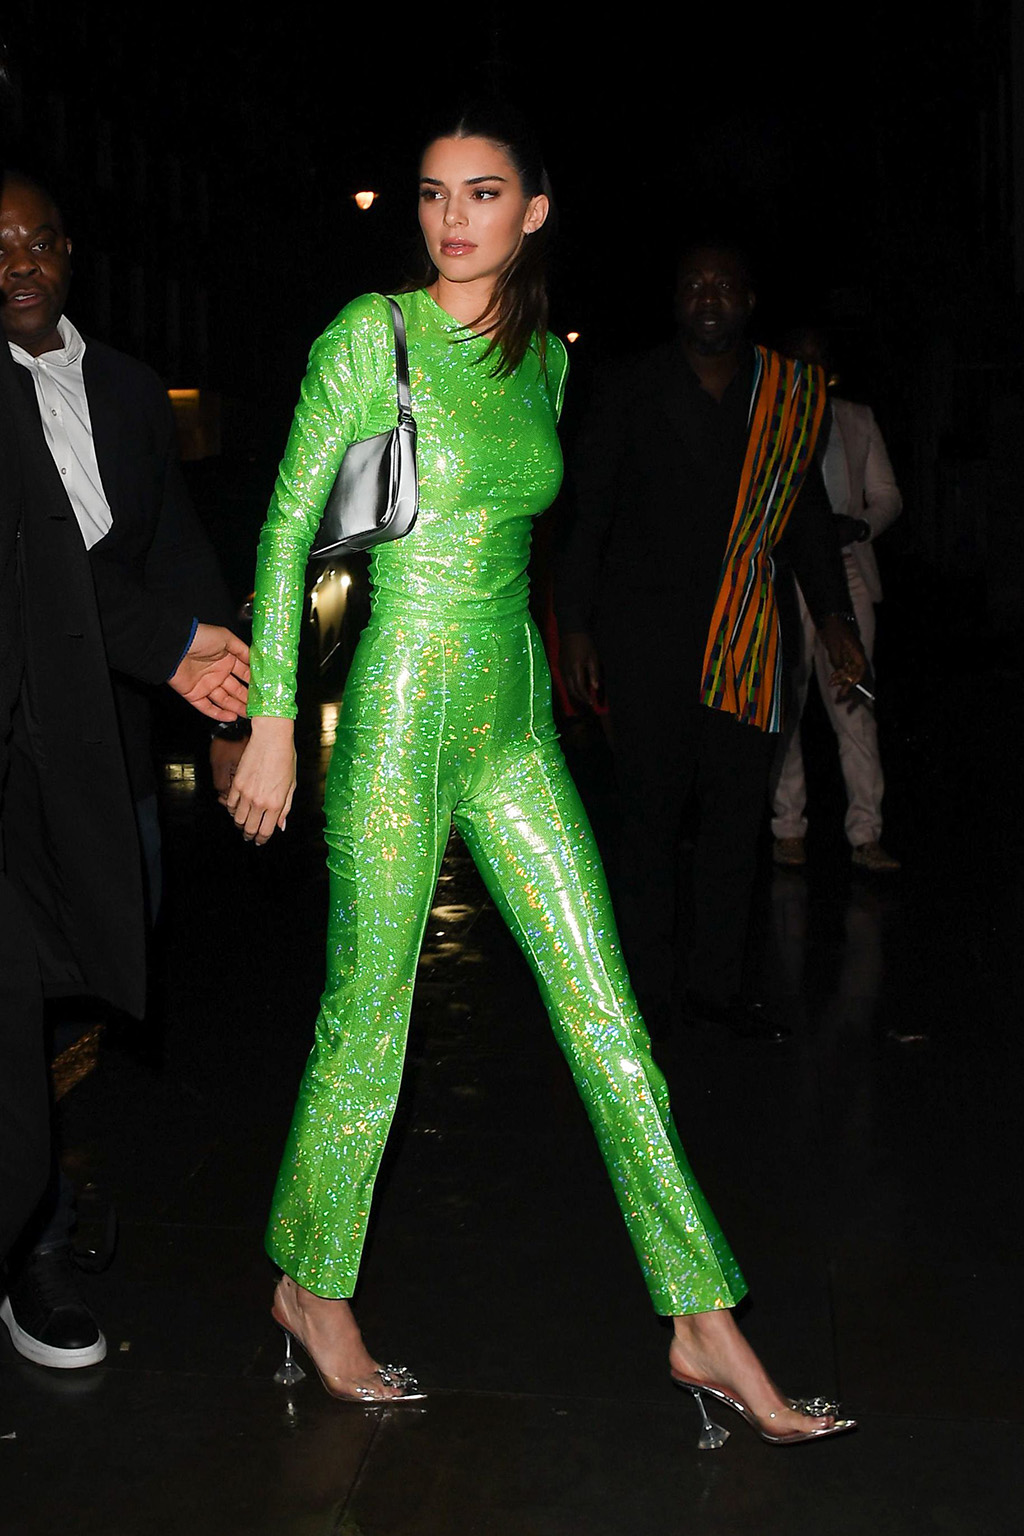 Kendall Jenner, green shirt, green pants, amina muaddi heels, 40th Brit Awards, Sony Music After Party, Arrivals, The Standard, London, UK - 18 Feb 2020Wearing Saks Potts Shoes By Amina Muaddi